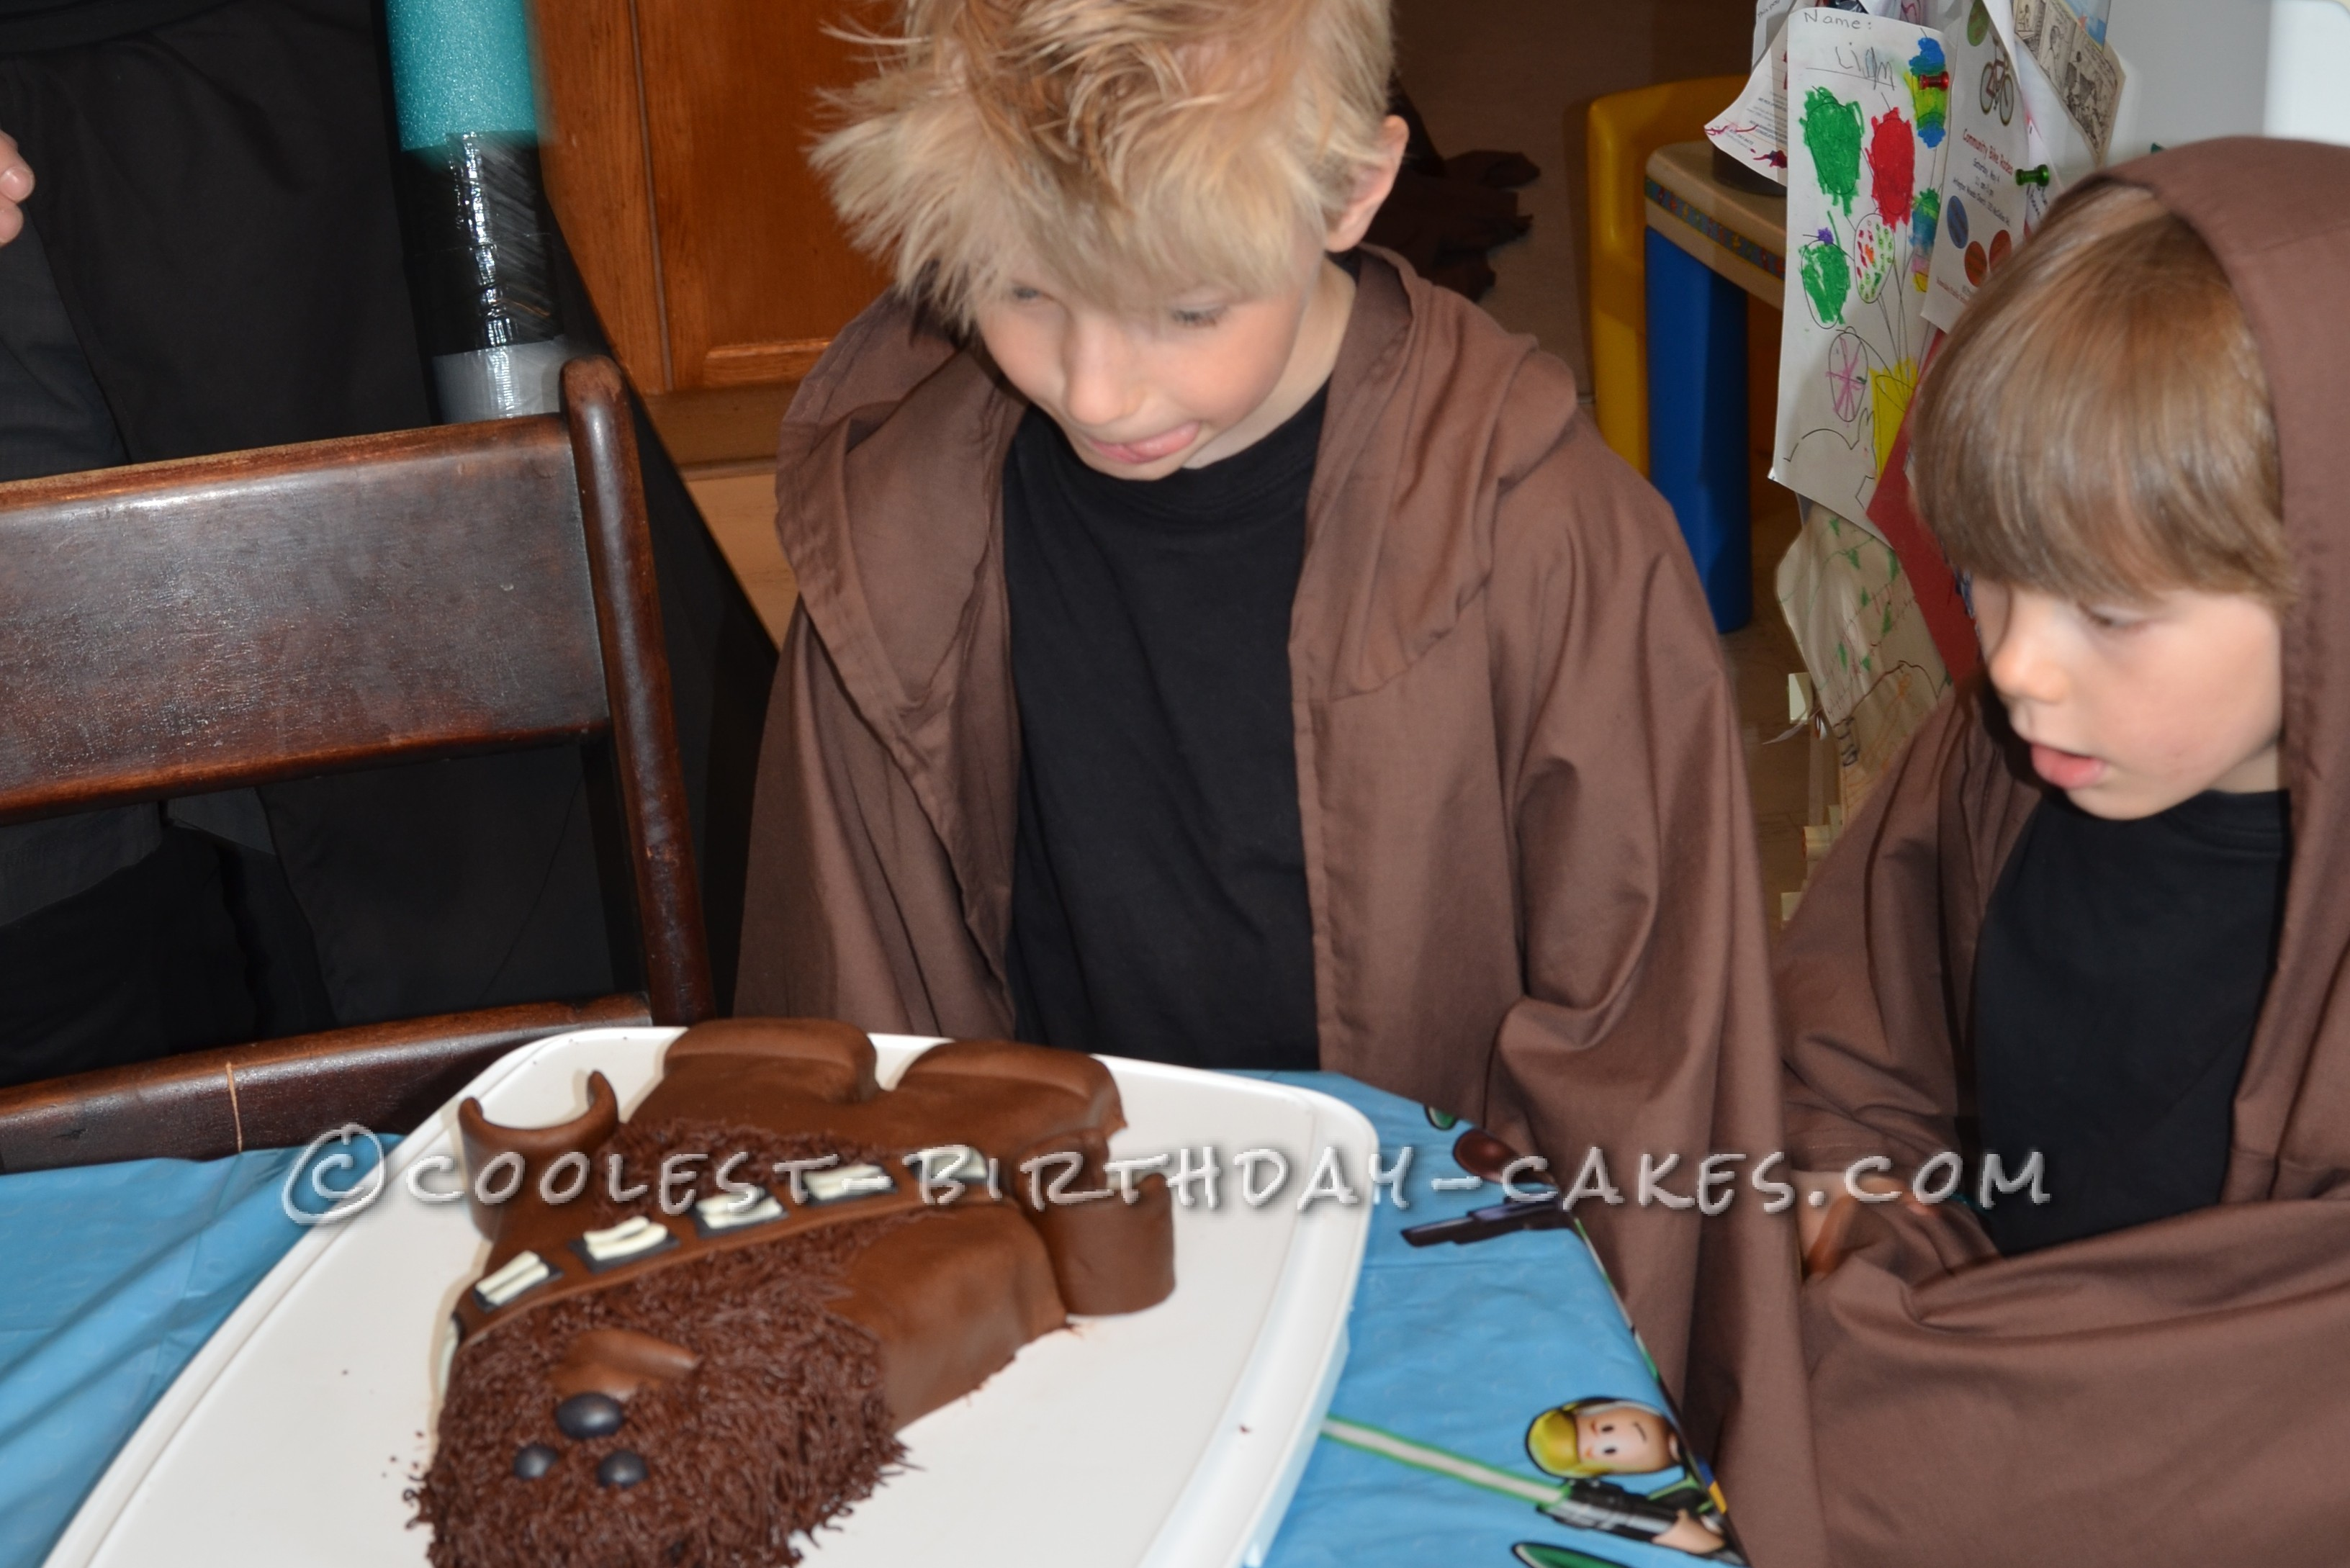 The birthday boy and his brother seeing the cake for the fist time in their homemade Jedi robes.